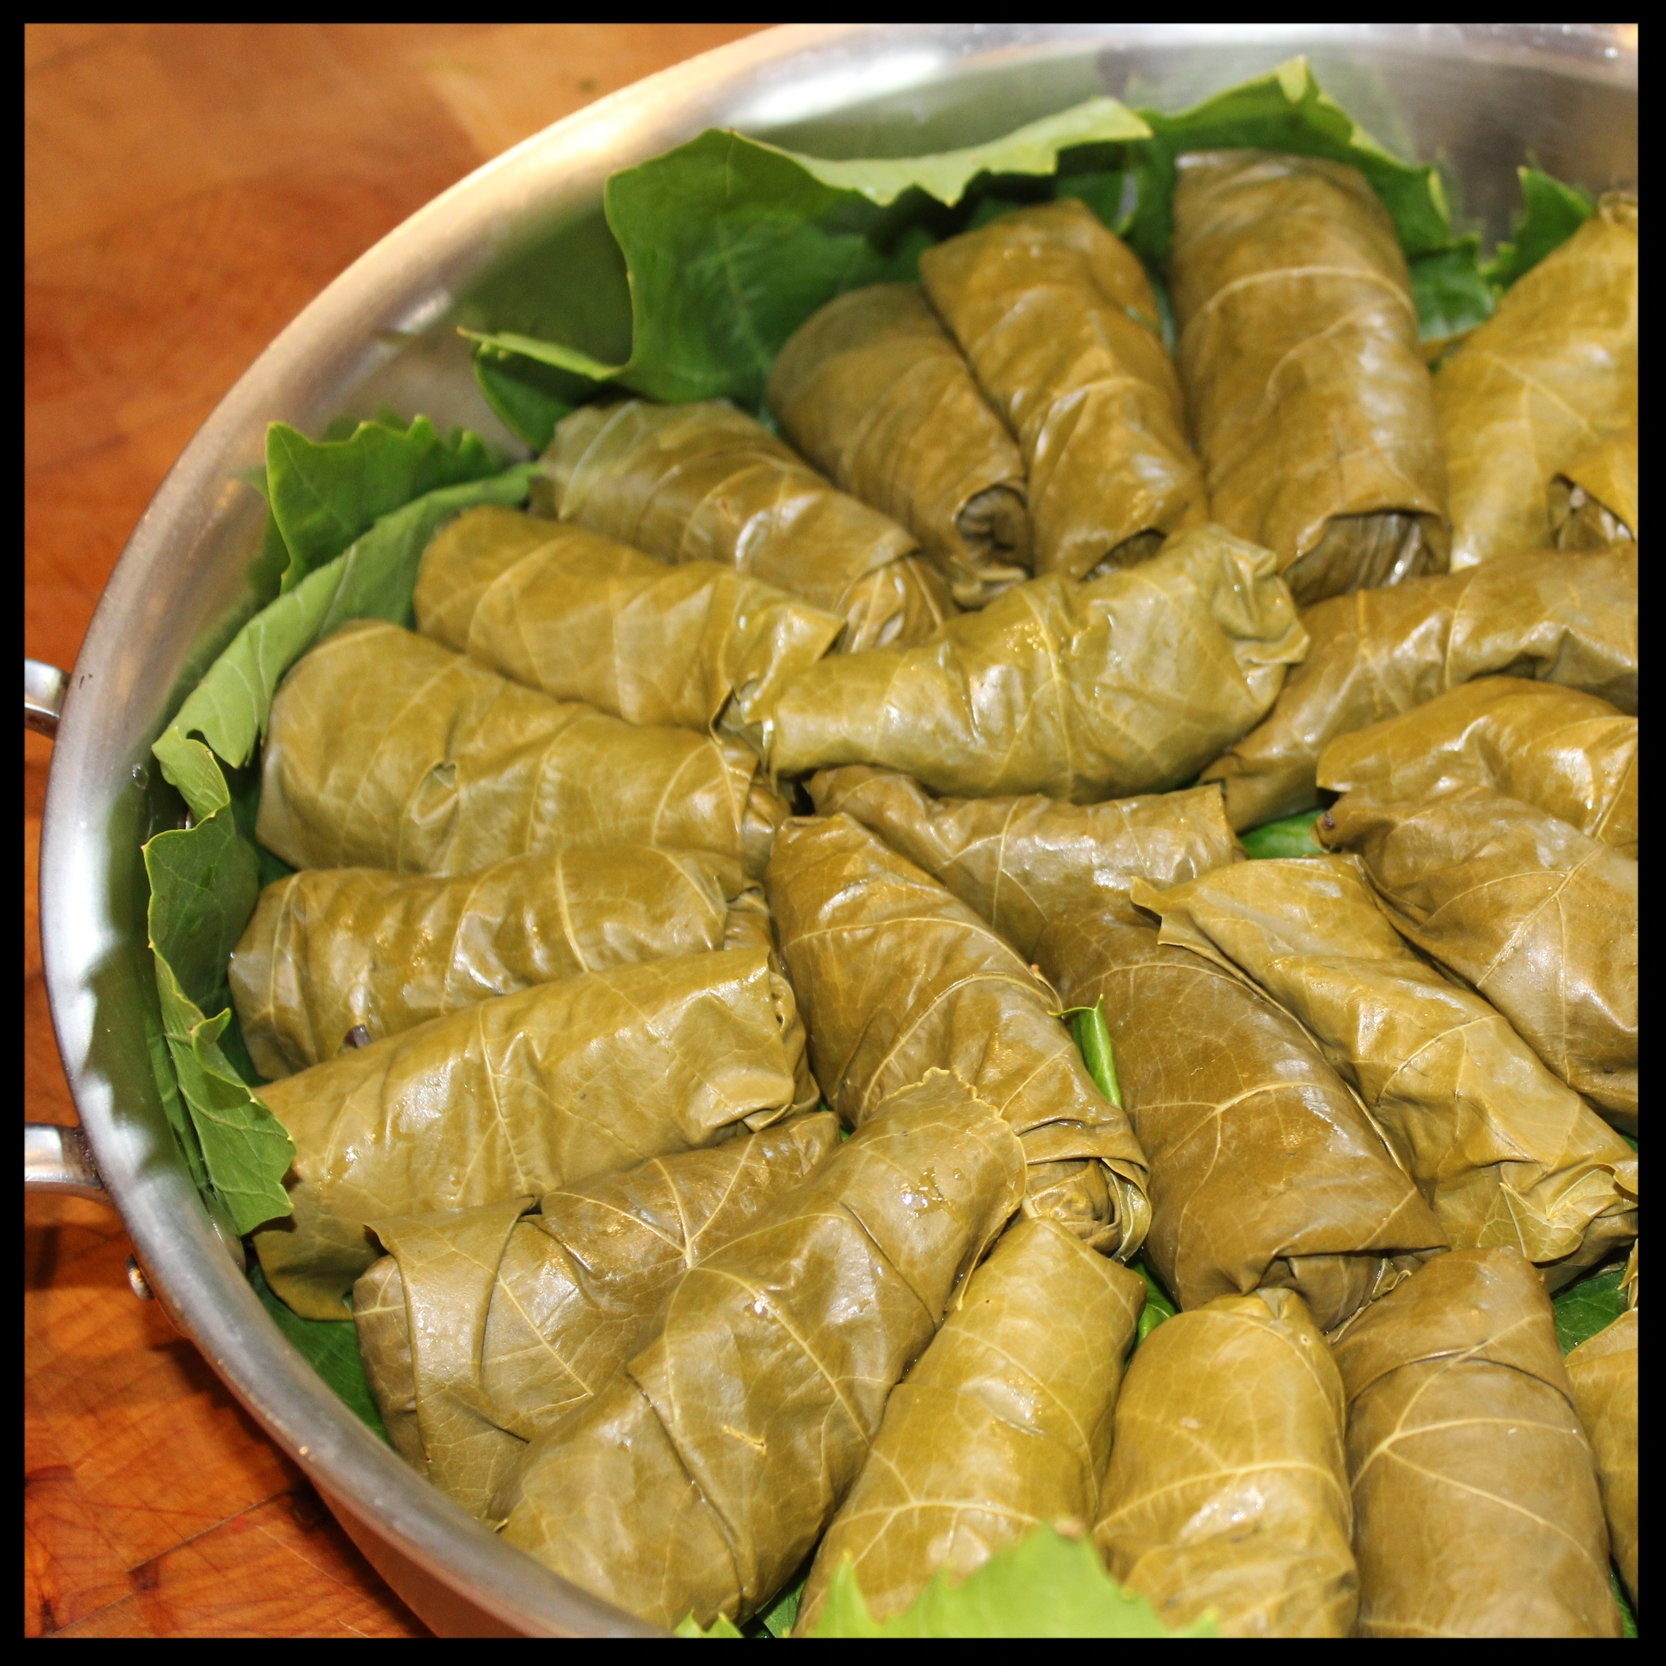 15.  The key to retaining the shape of the dolmas is to pack them fairly tightly in your pan.